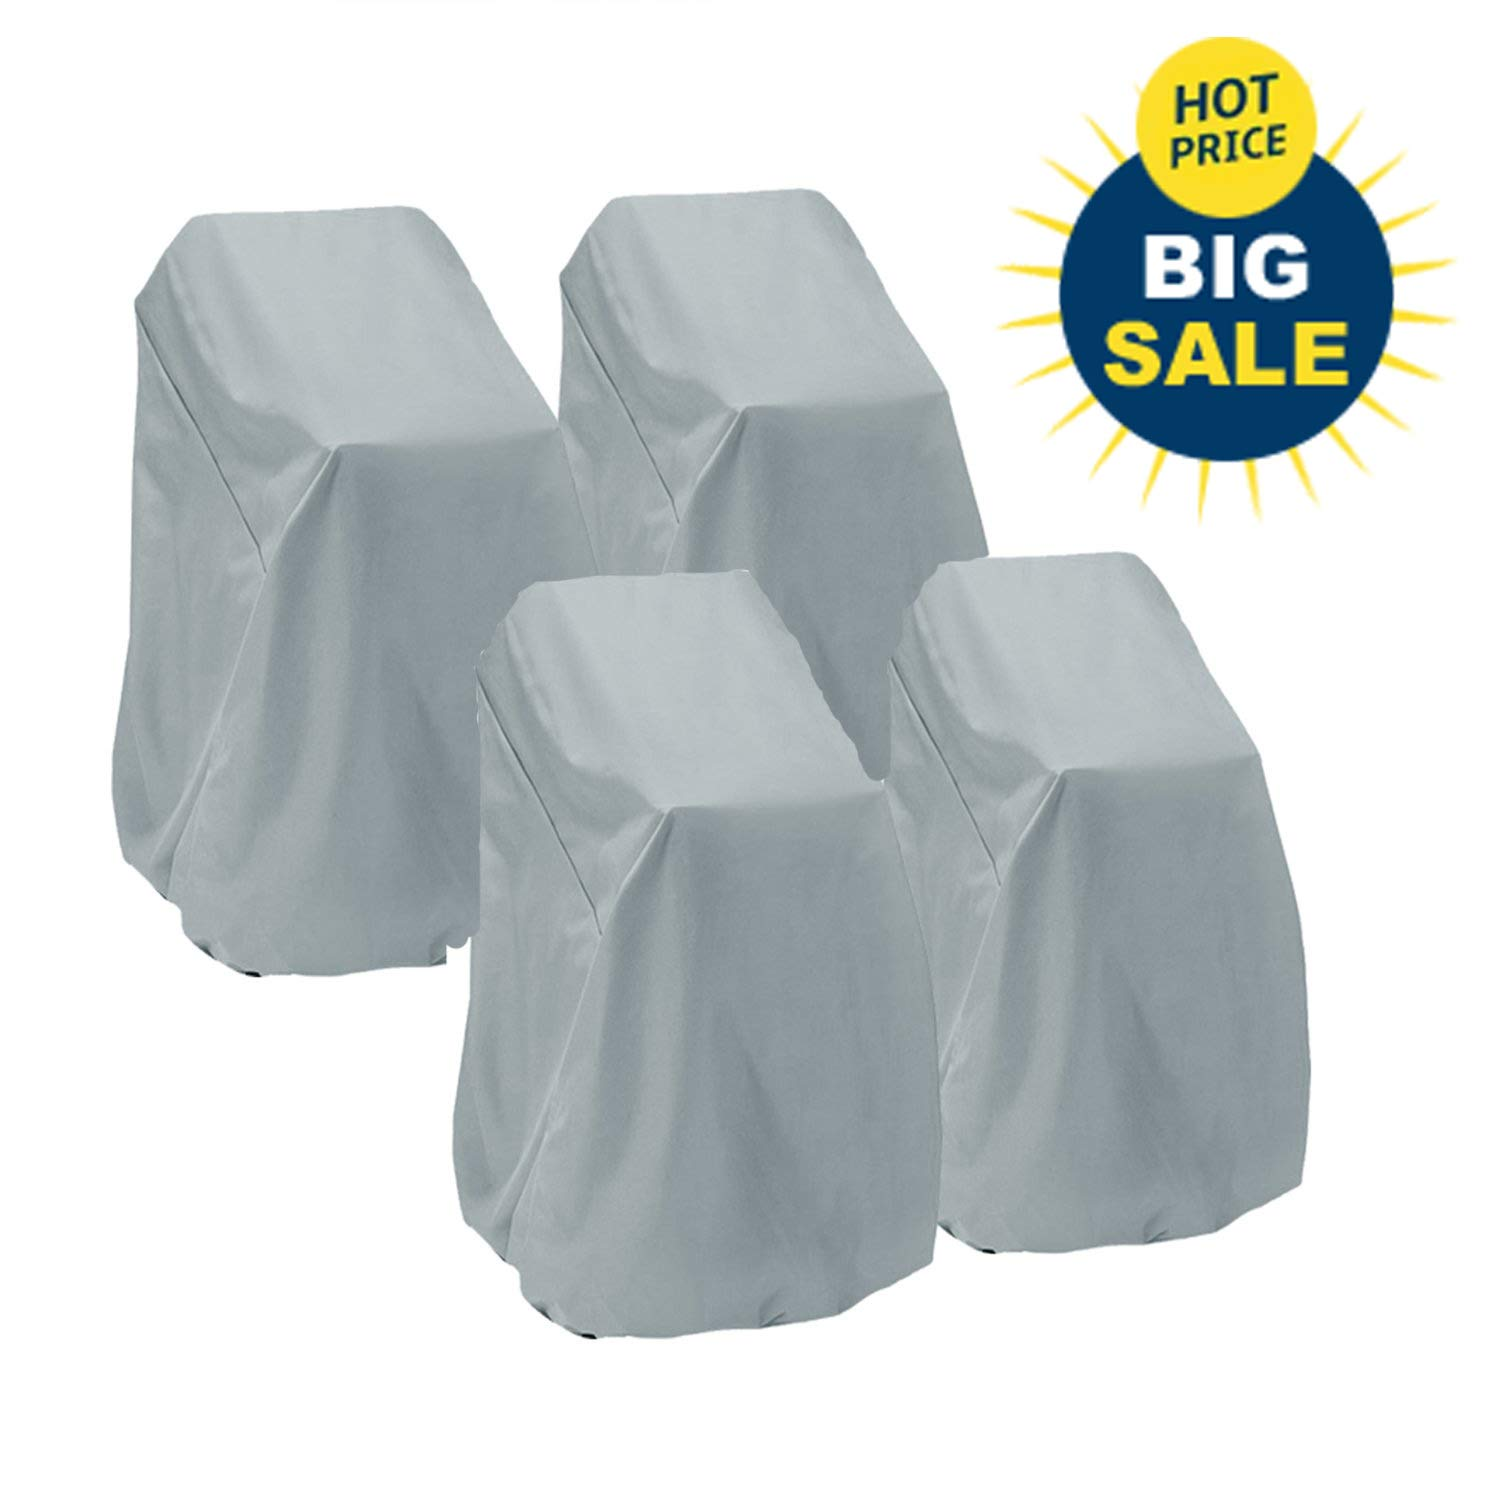 Patio Chair Cover Highback Durable Waterproof Outdoor Bar Stool Cover Stairs Cover Out Furniture Cover Stackable Chairs Cover(L27.5 x D27.5 x H49.2 inch, 4 Pack)